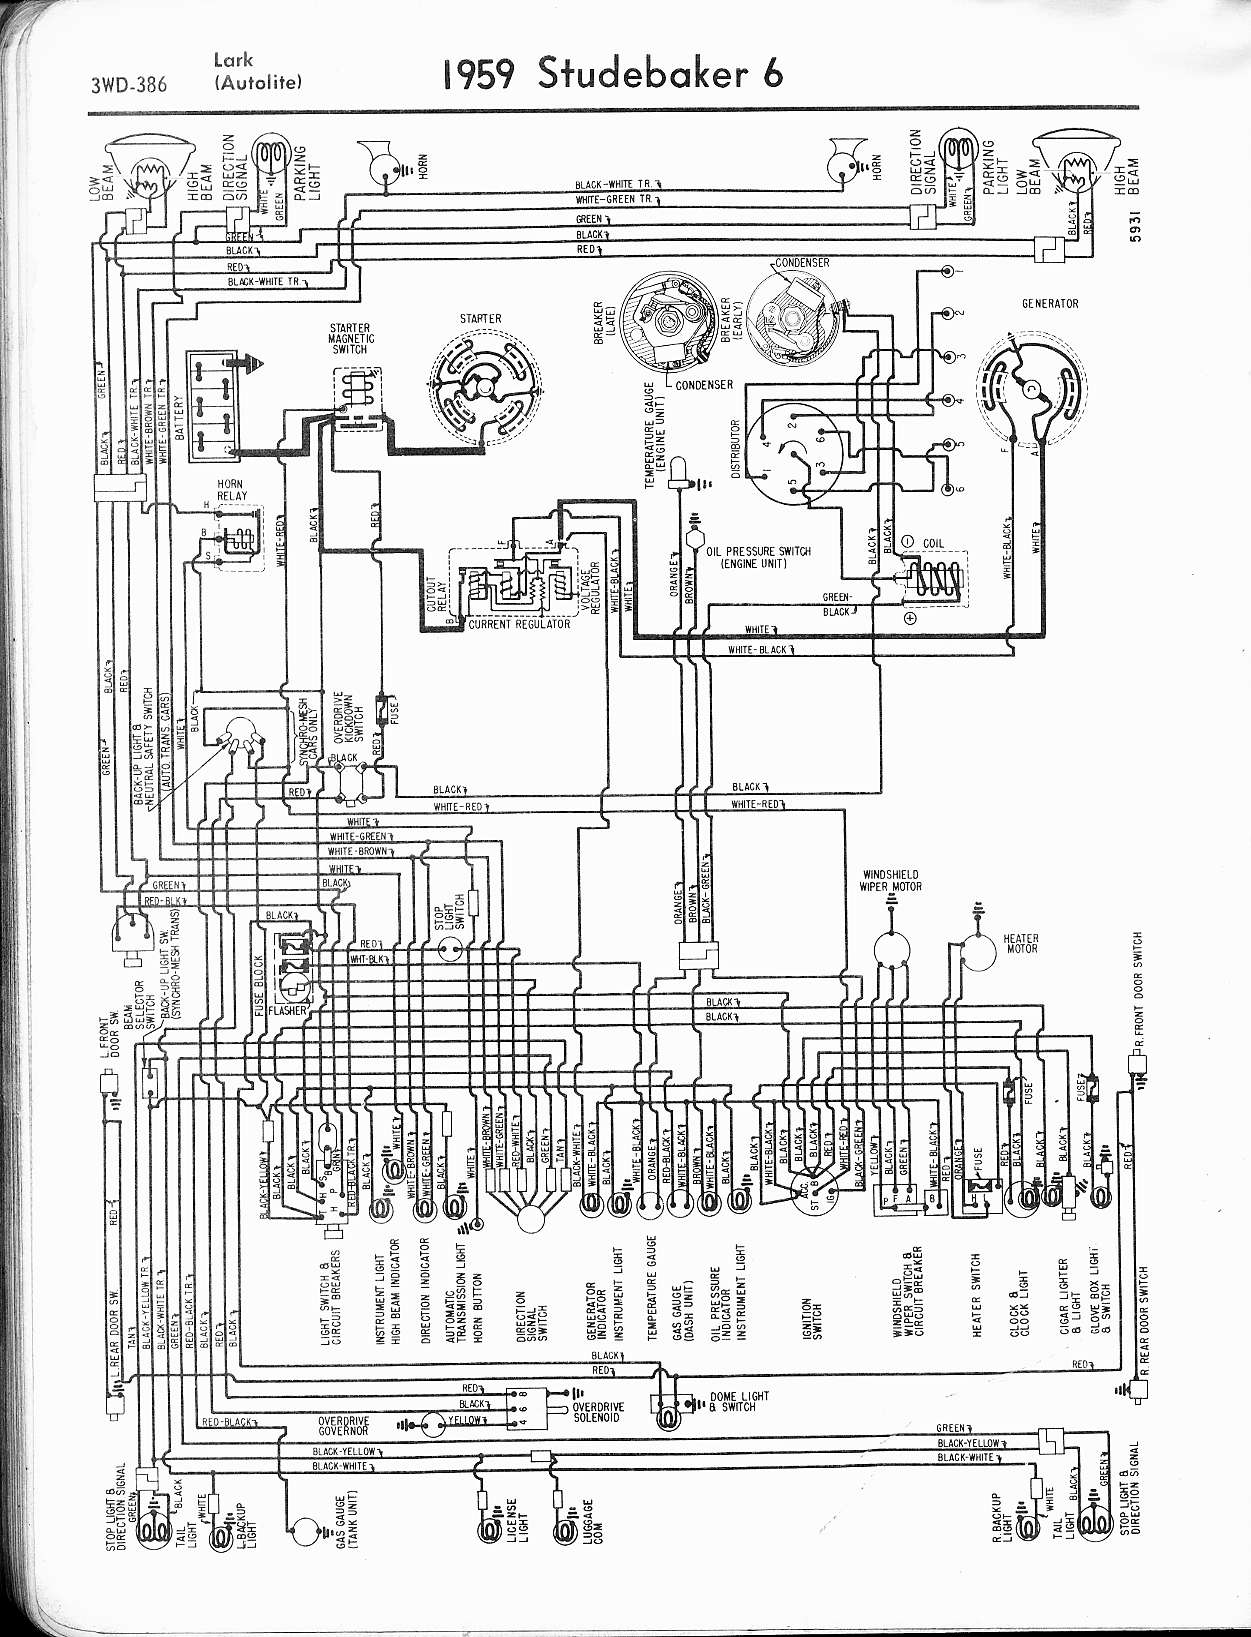 Wiring Diagram For 1959 Studebaker V8 Silver Hawk - Wiring Diagram on old johnson outboard parts diagram, old phone cable, phone line hook up diagram, phone jack installation diagram, old phone radio, old phone horn, old phone dimensions, old phone parts diagram, old phone cover, parts of a phone diagram, old electric diagram, old phone wiring colors, telephone parts diagram, cell phone diagram, old phone generator, old phone adapter, phone line connection diagram, old phone connector, old phone switch, old telephone diagram,